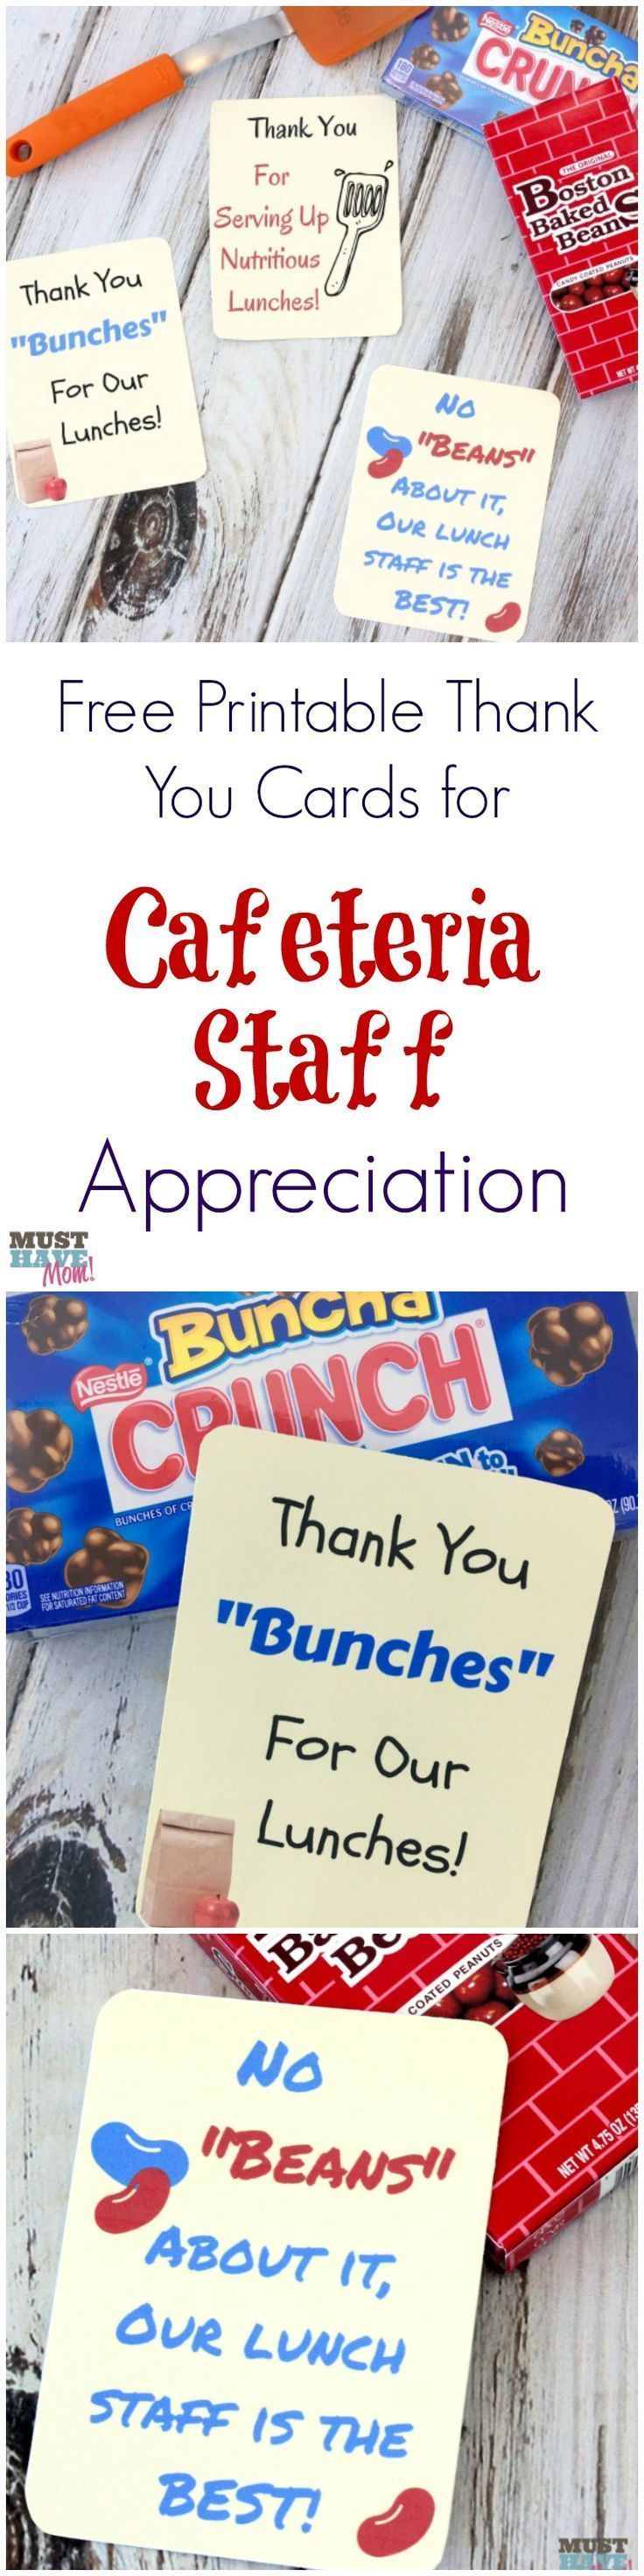 Free printable thank you cards for cafeteria staff appreciation! Celebrate school lunch hero day and thank those that provided school lunches for your child each day! #custodianappreciationgifts